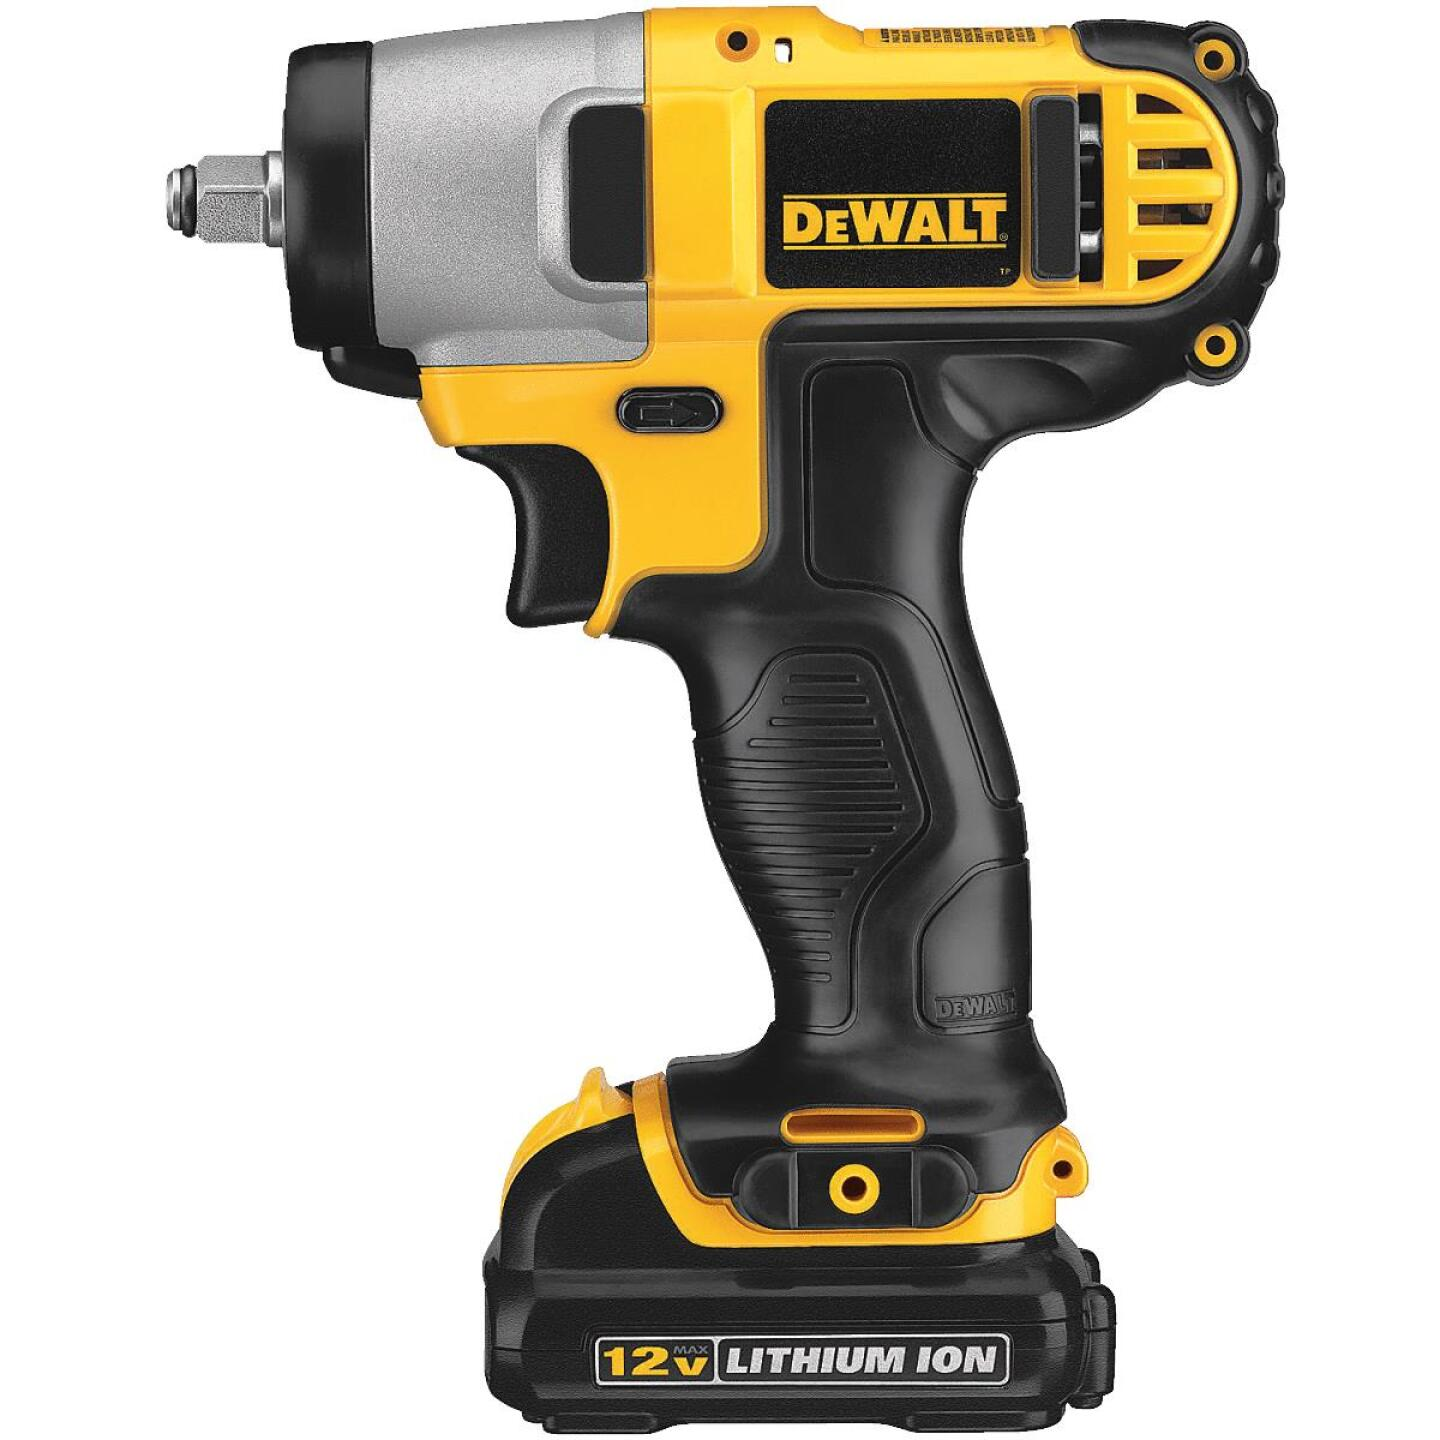 DeWalt 12 Volt MAX Lithium-Ion 3/8 In. Cordless Impact Wrench Kit Image 2